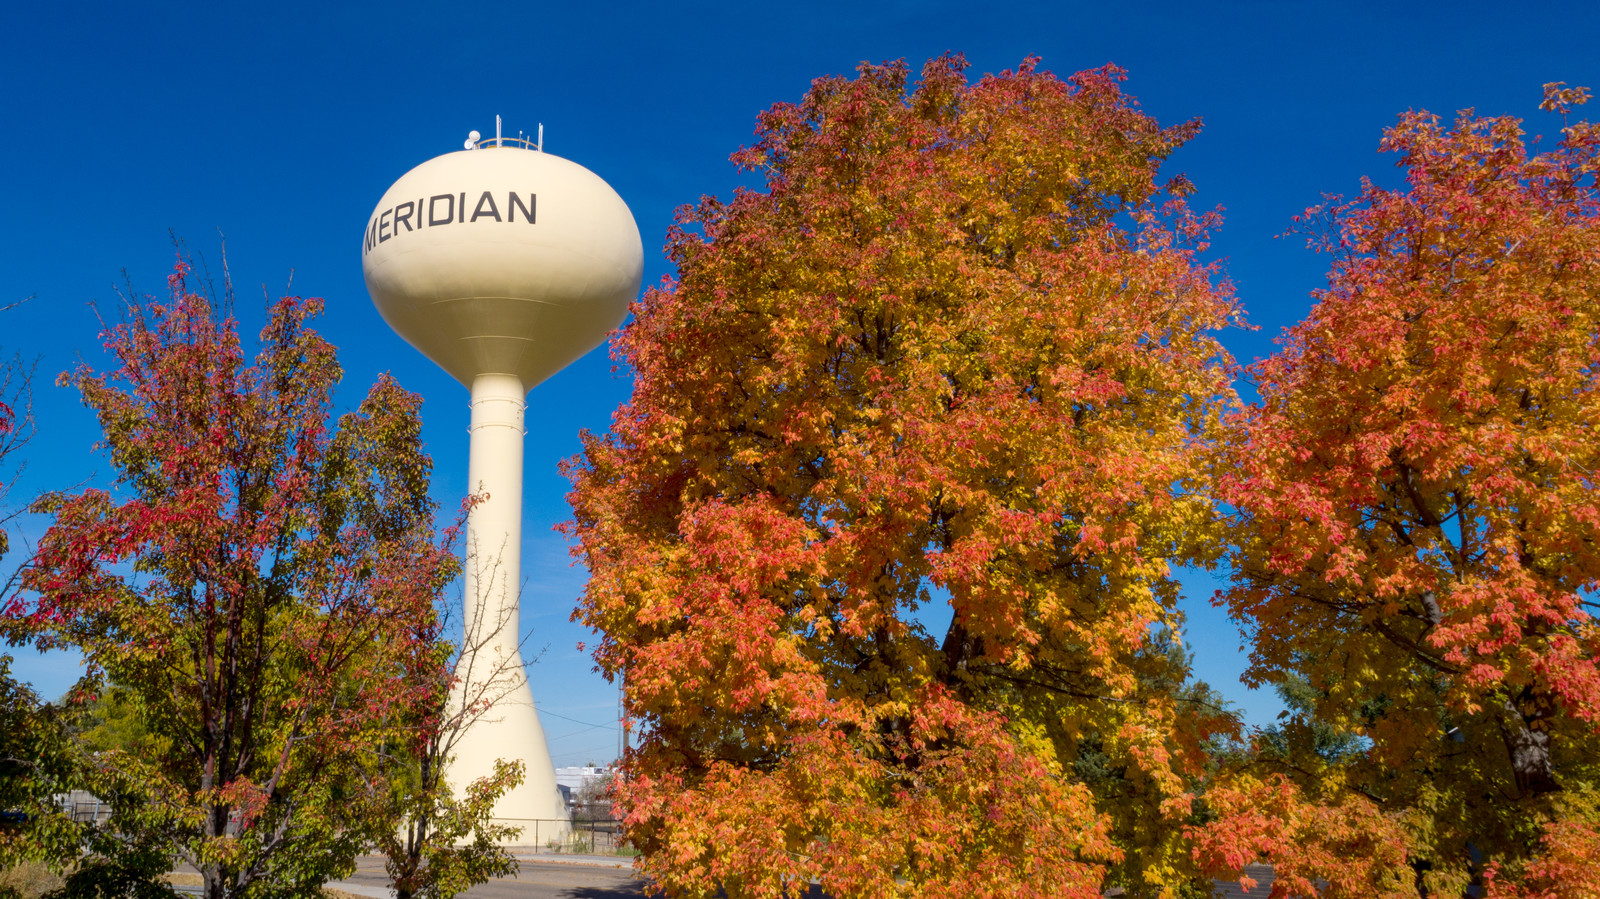 Red and yellow leaves in the fall with the Meridian Water tower in the background